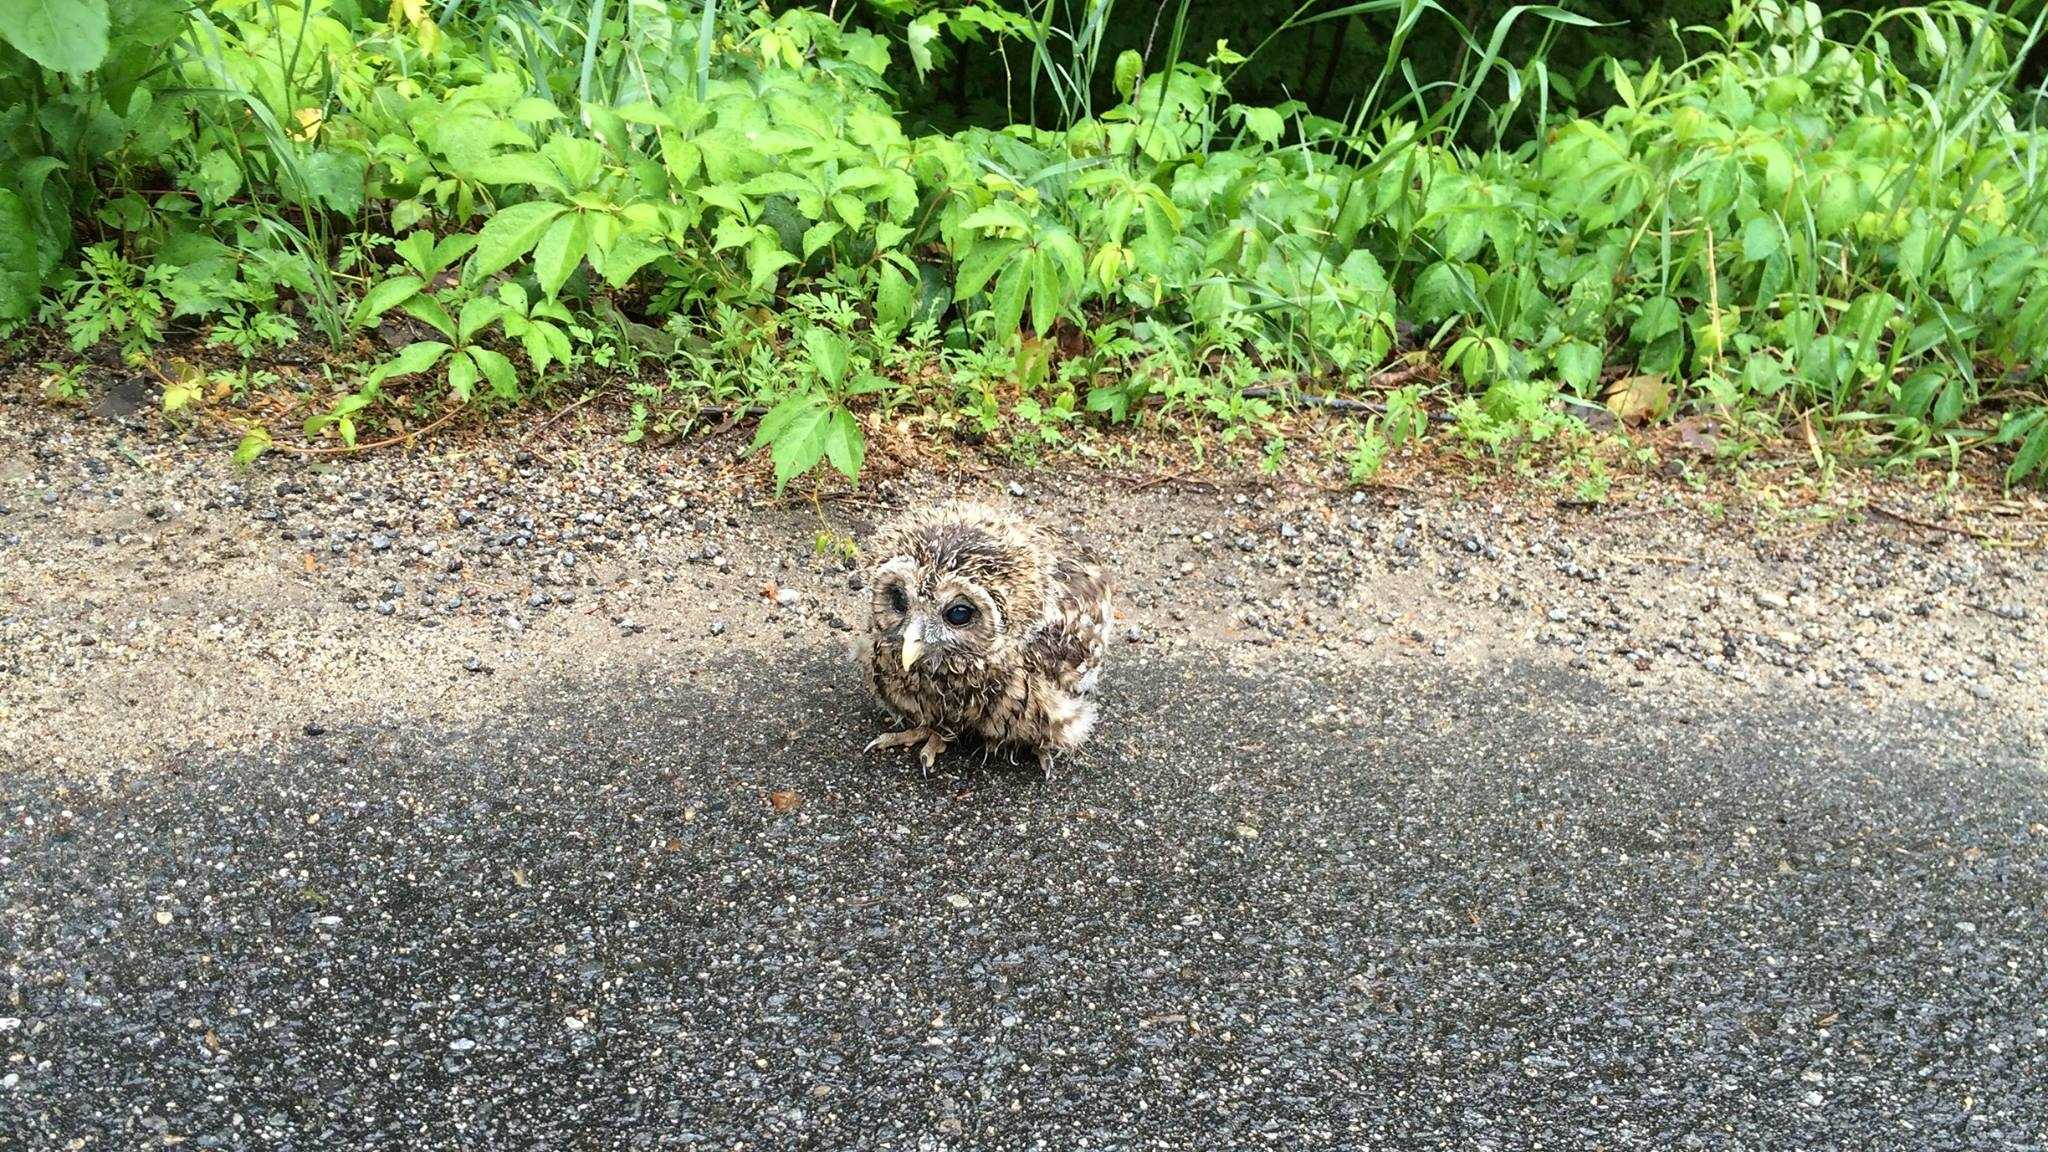 Someone spotted the owlet near a school bus stop on Pond Street, with its mother perched in the trees above.